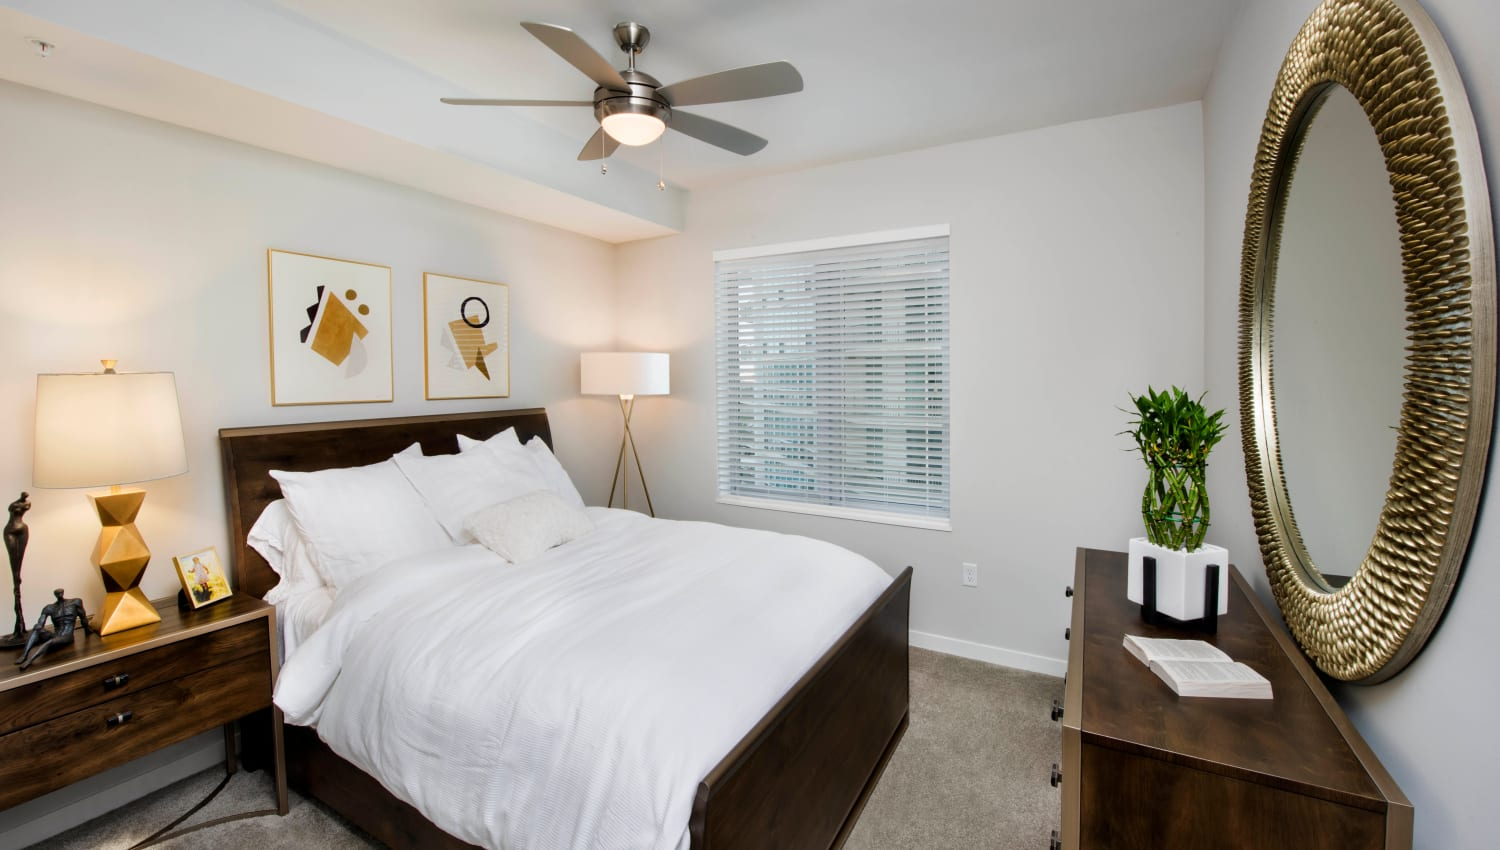 Ceiling fan and modern furnishings in a luxury model home's master bedroom at Olympus Harbour Island in Tampa, Florida